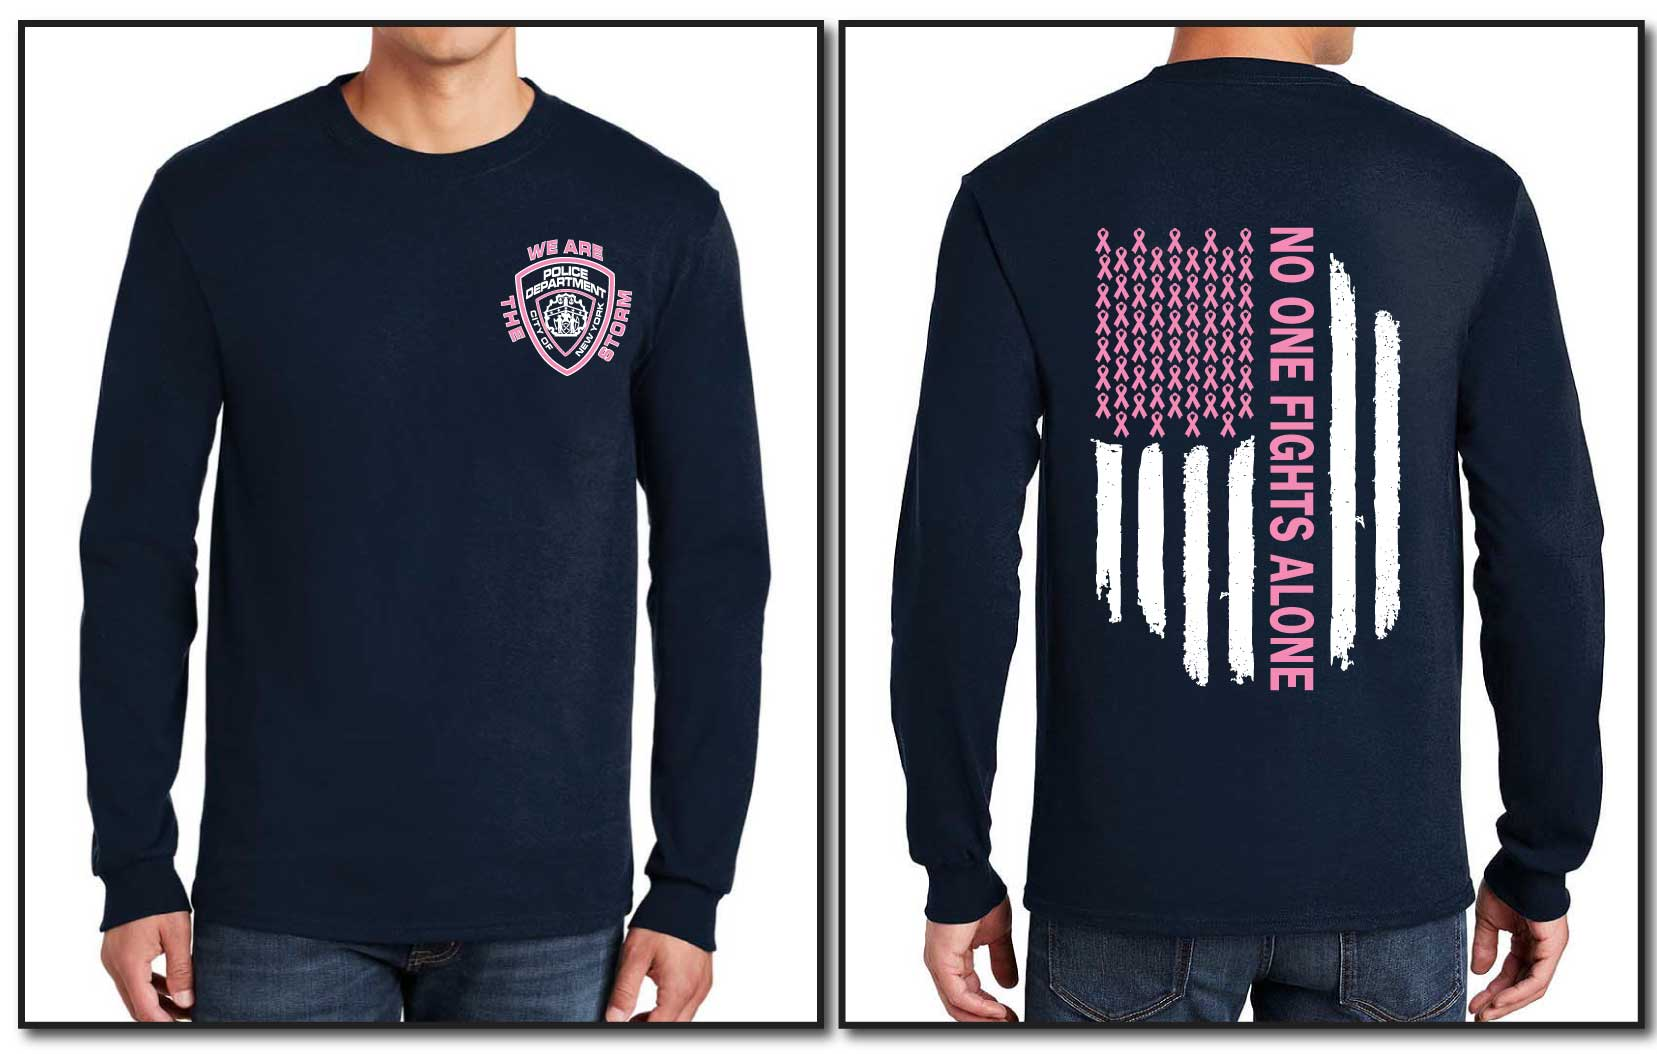 PERULLO FUNDRAISER LONG SLEEVE TEE